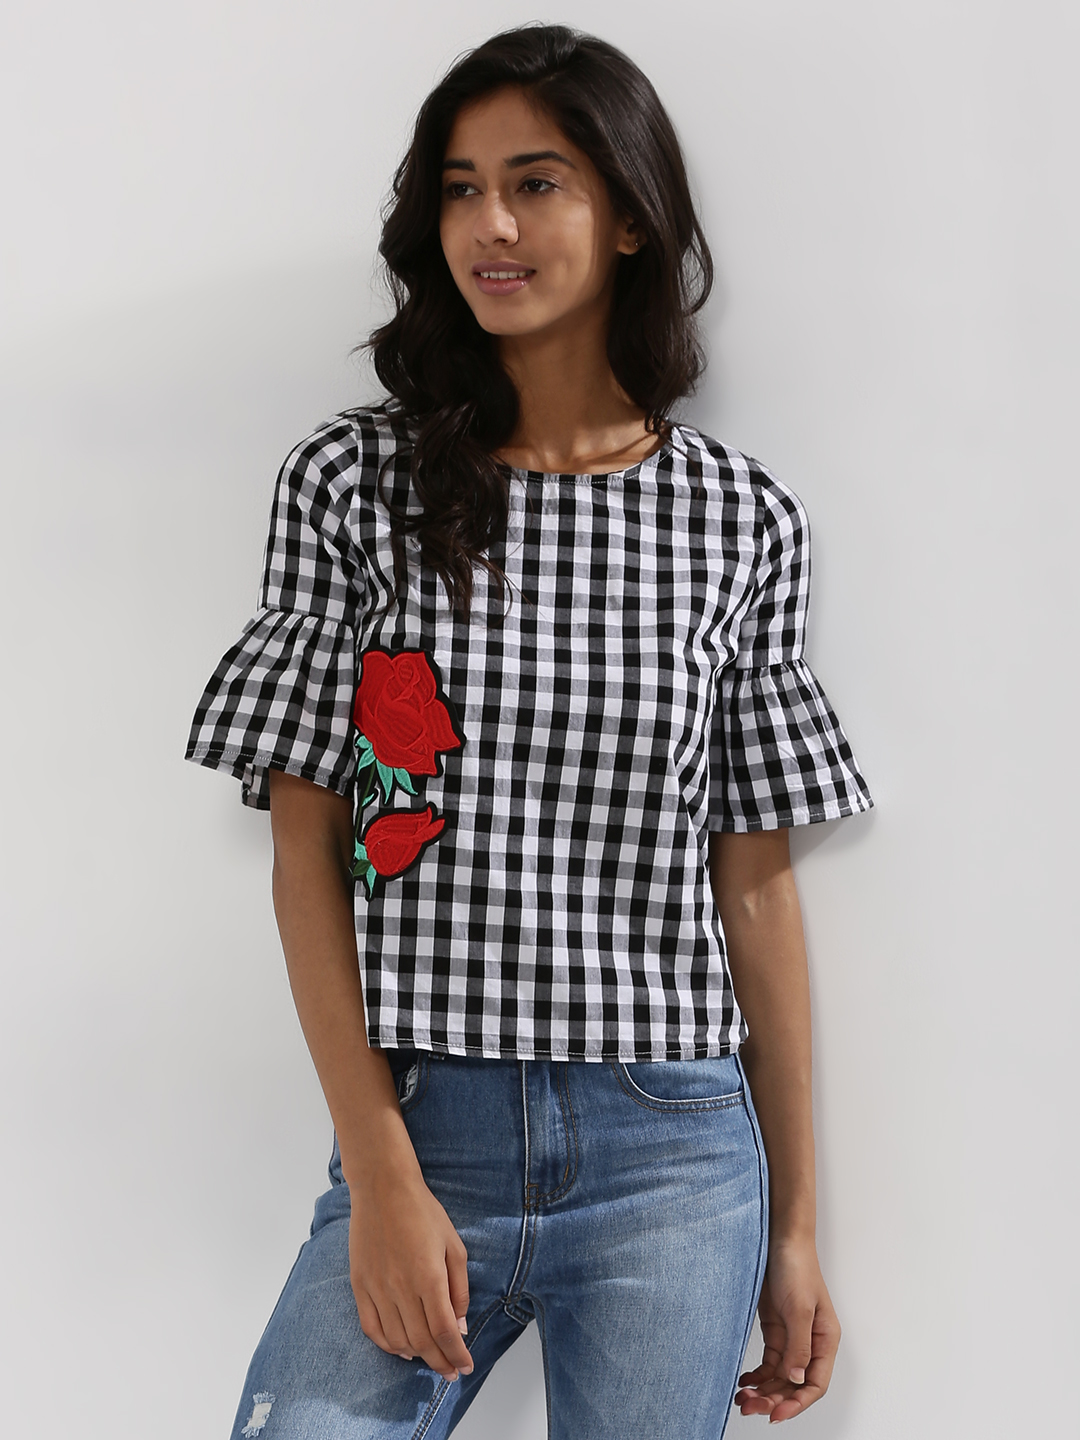 Evah London Multi Gingham Bell Sleeve Top With Patch Detail 1